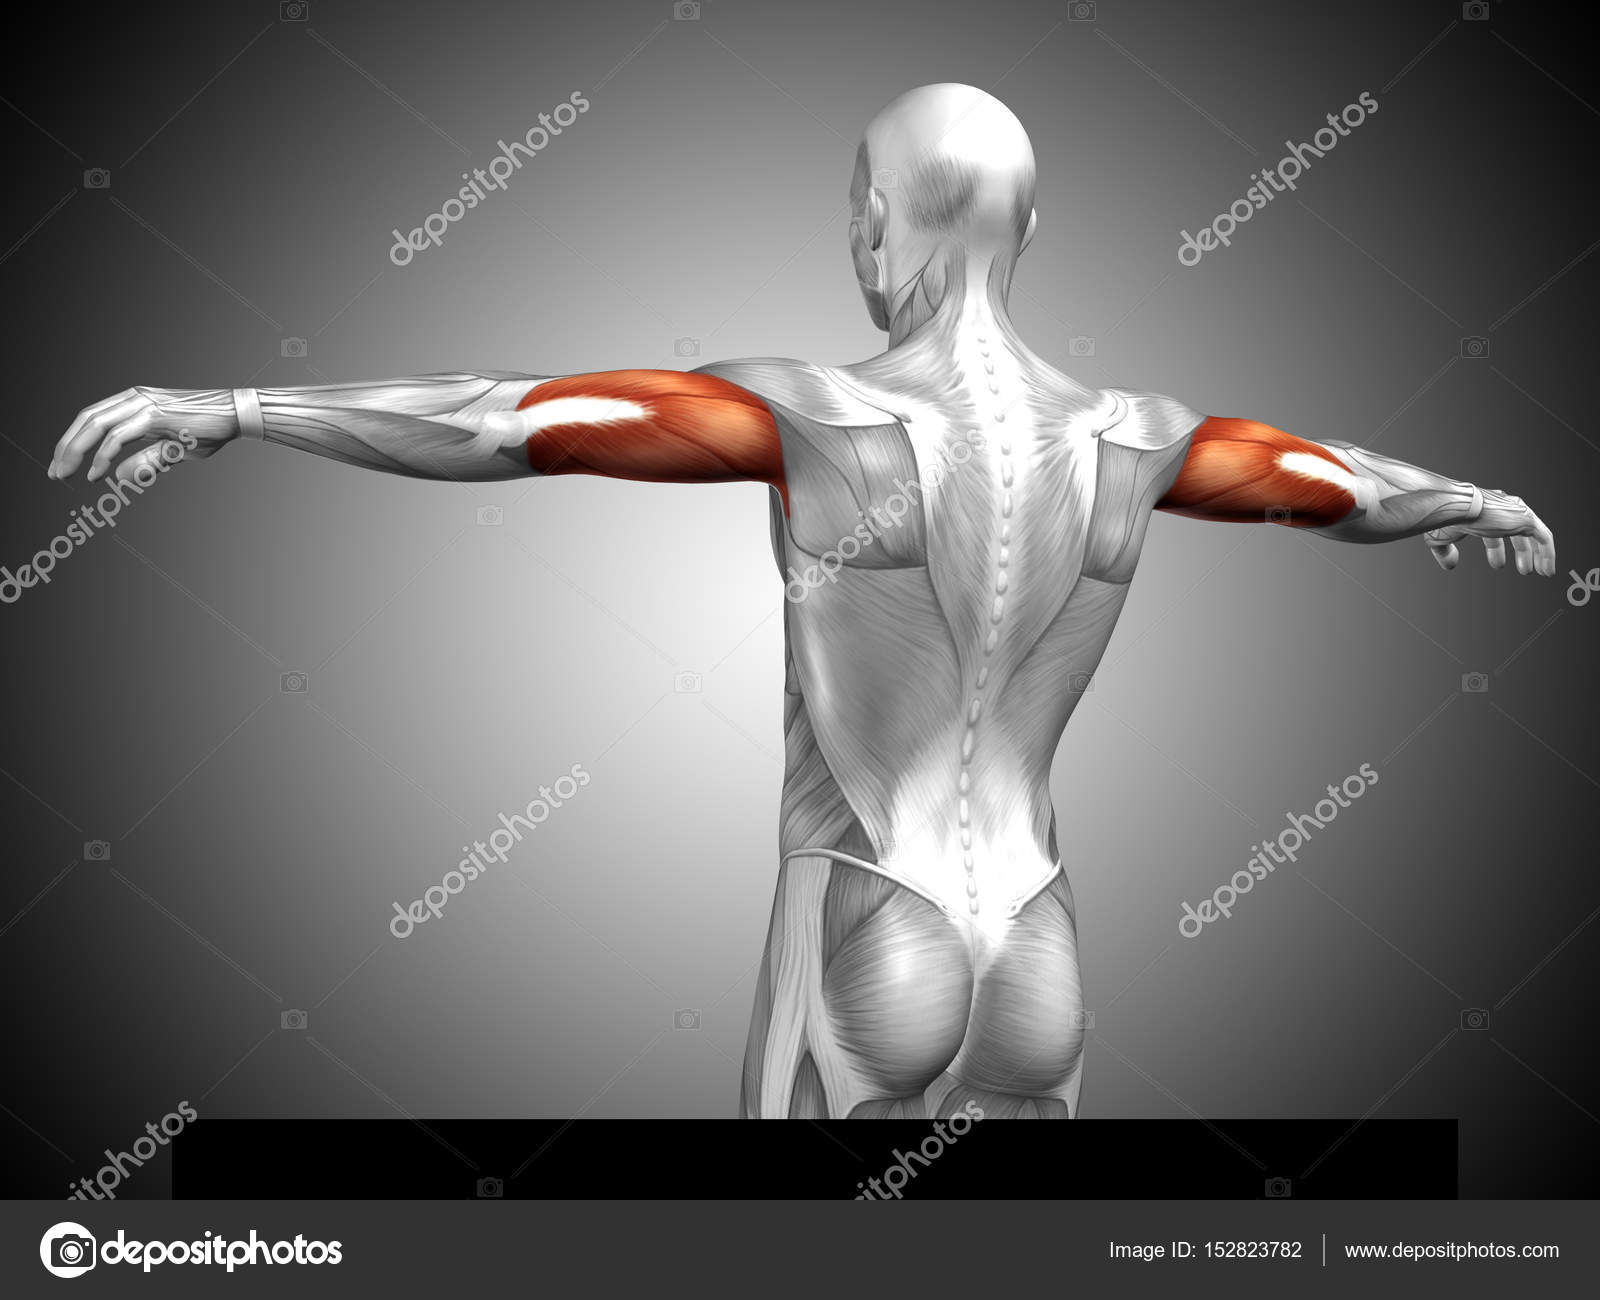 human triceps muscles anatomy — Stock Photo © design36 #152823782